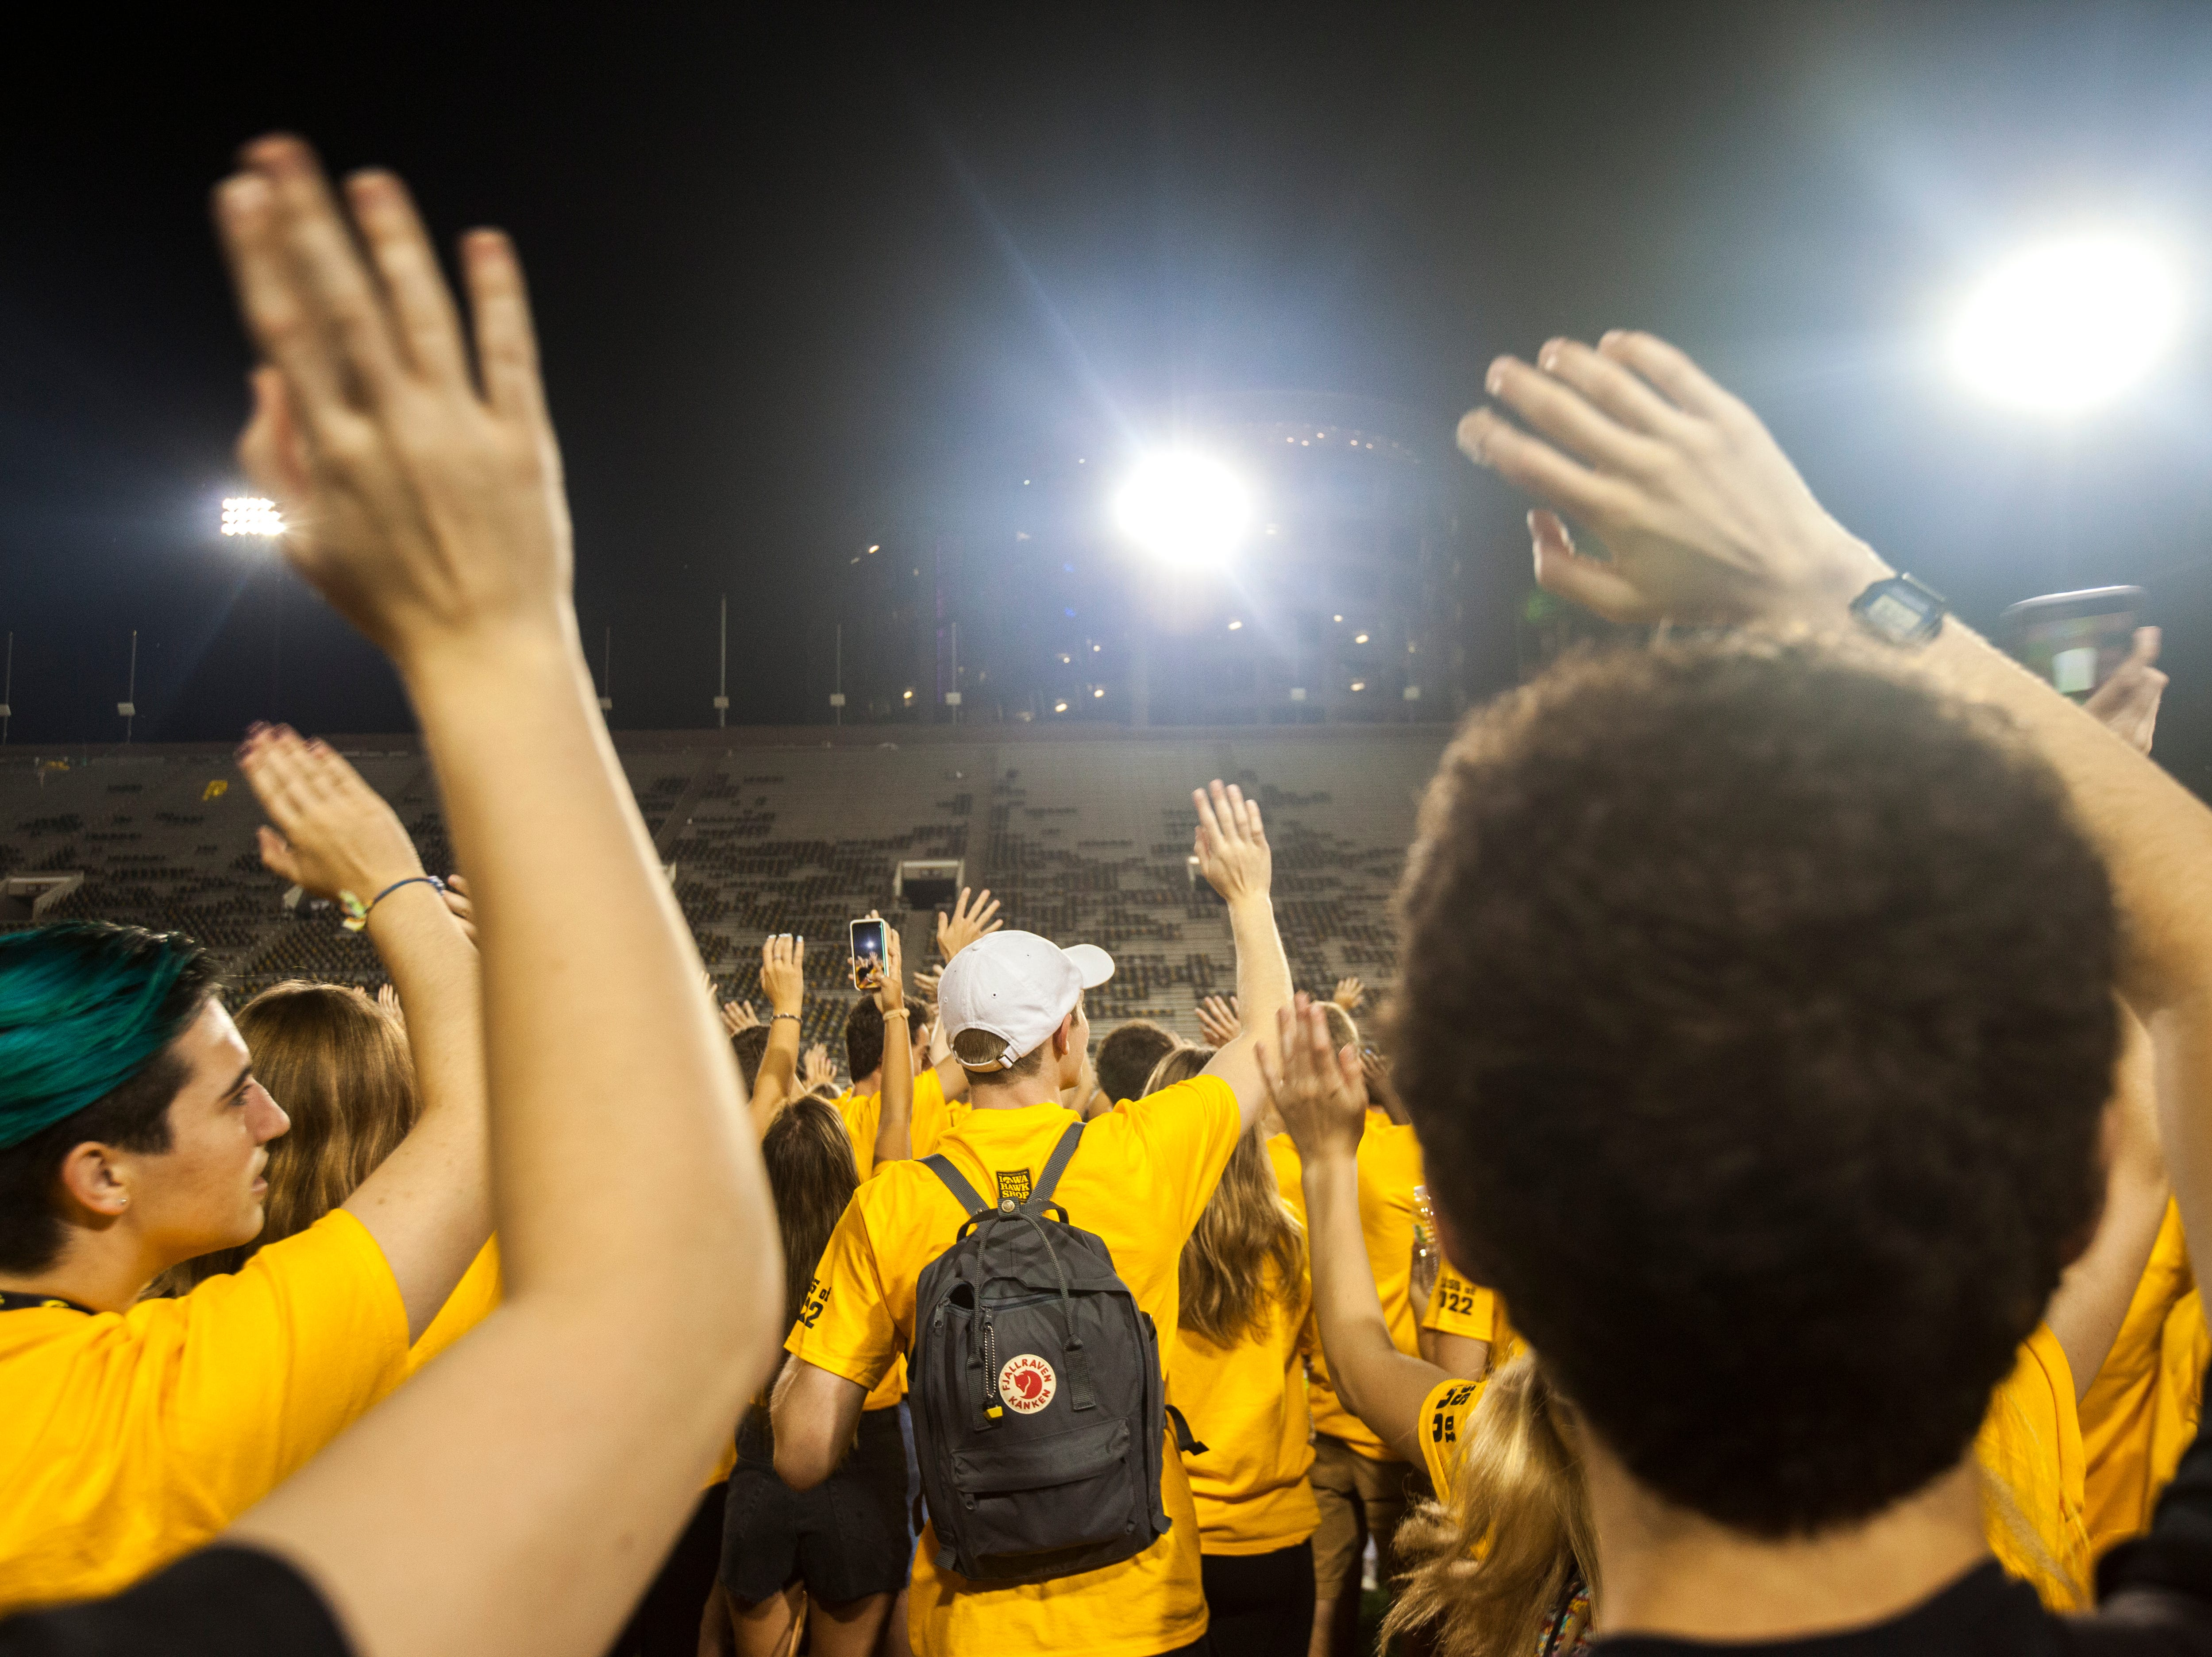 University of Iowa students wave towards people in the Stead Family Children's Hospital during an OnIowa event on Friday, Aug. 17, 2018, at Kinnick Stadium in Iowa City. The annual Kickoff at Kinnick allows new students a chance to walk on the field for their class photo.